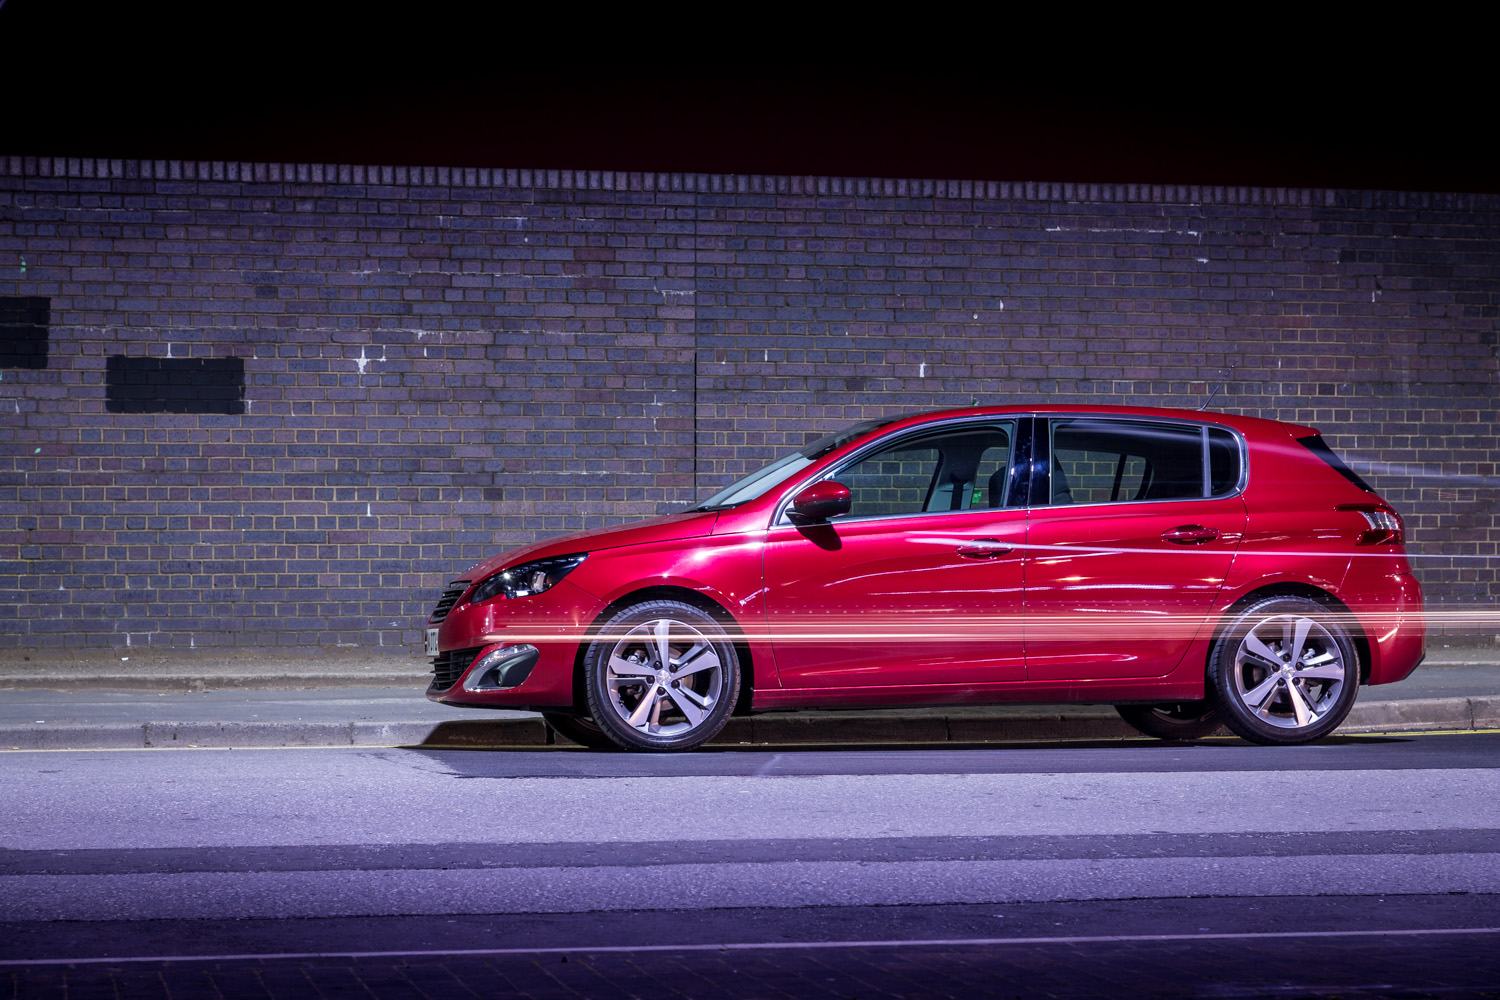 Peugeot 308 Allure Highlights